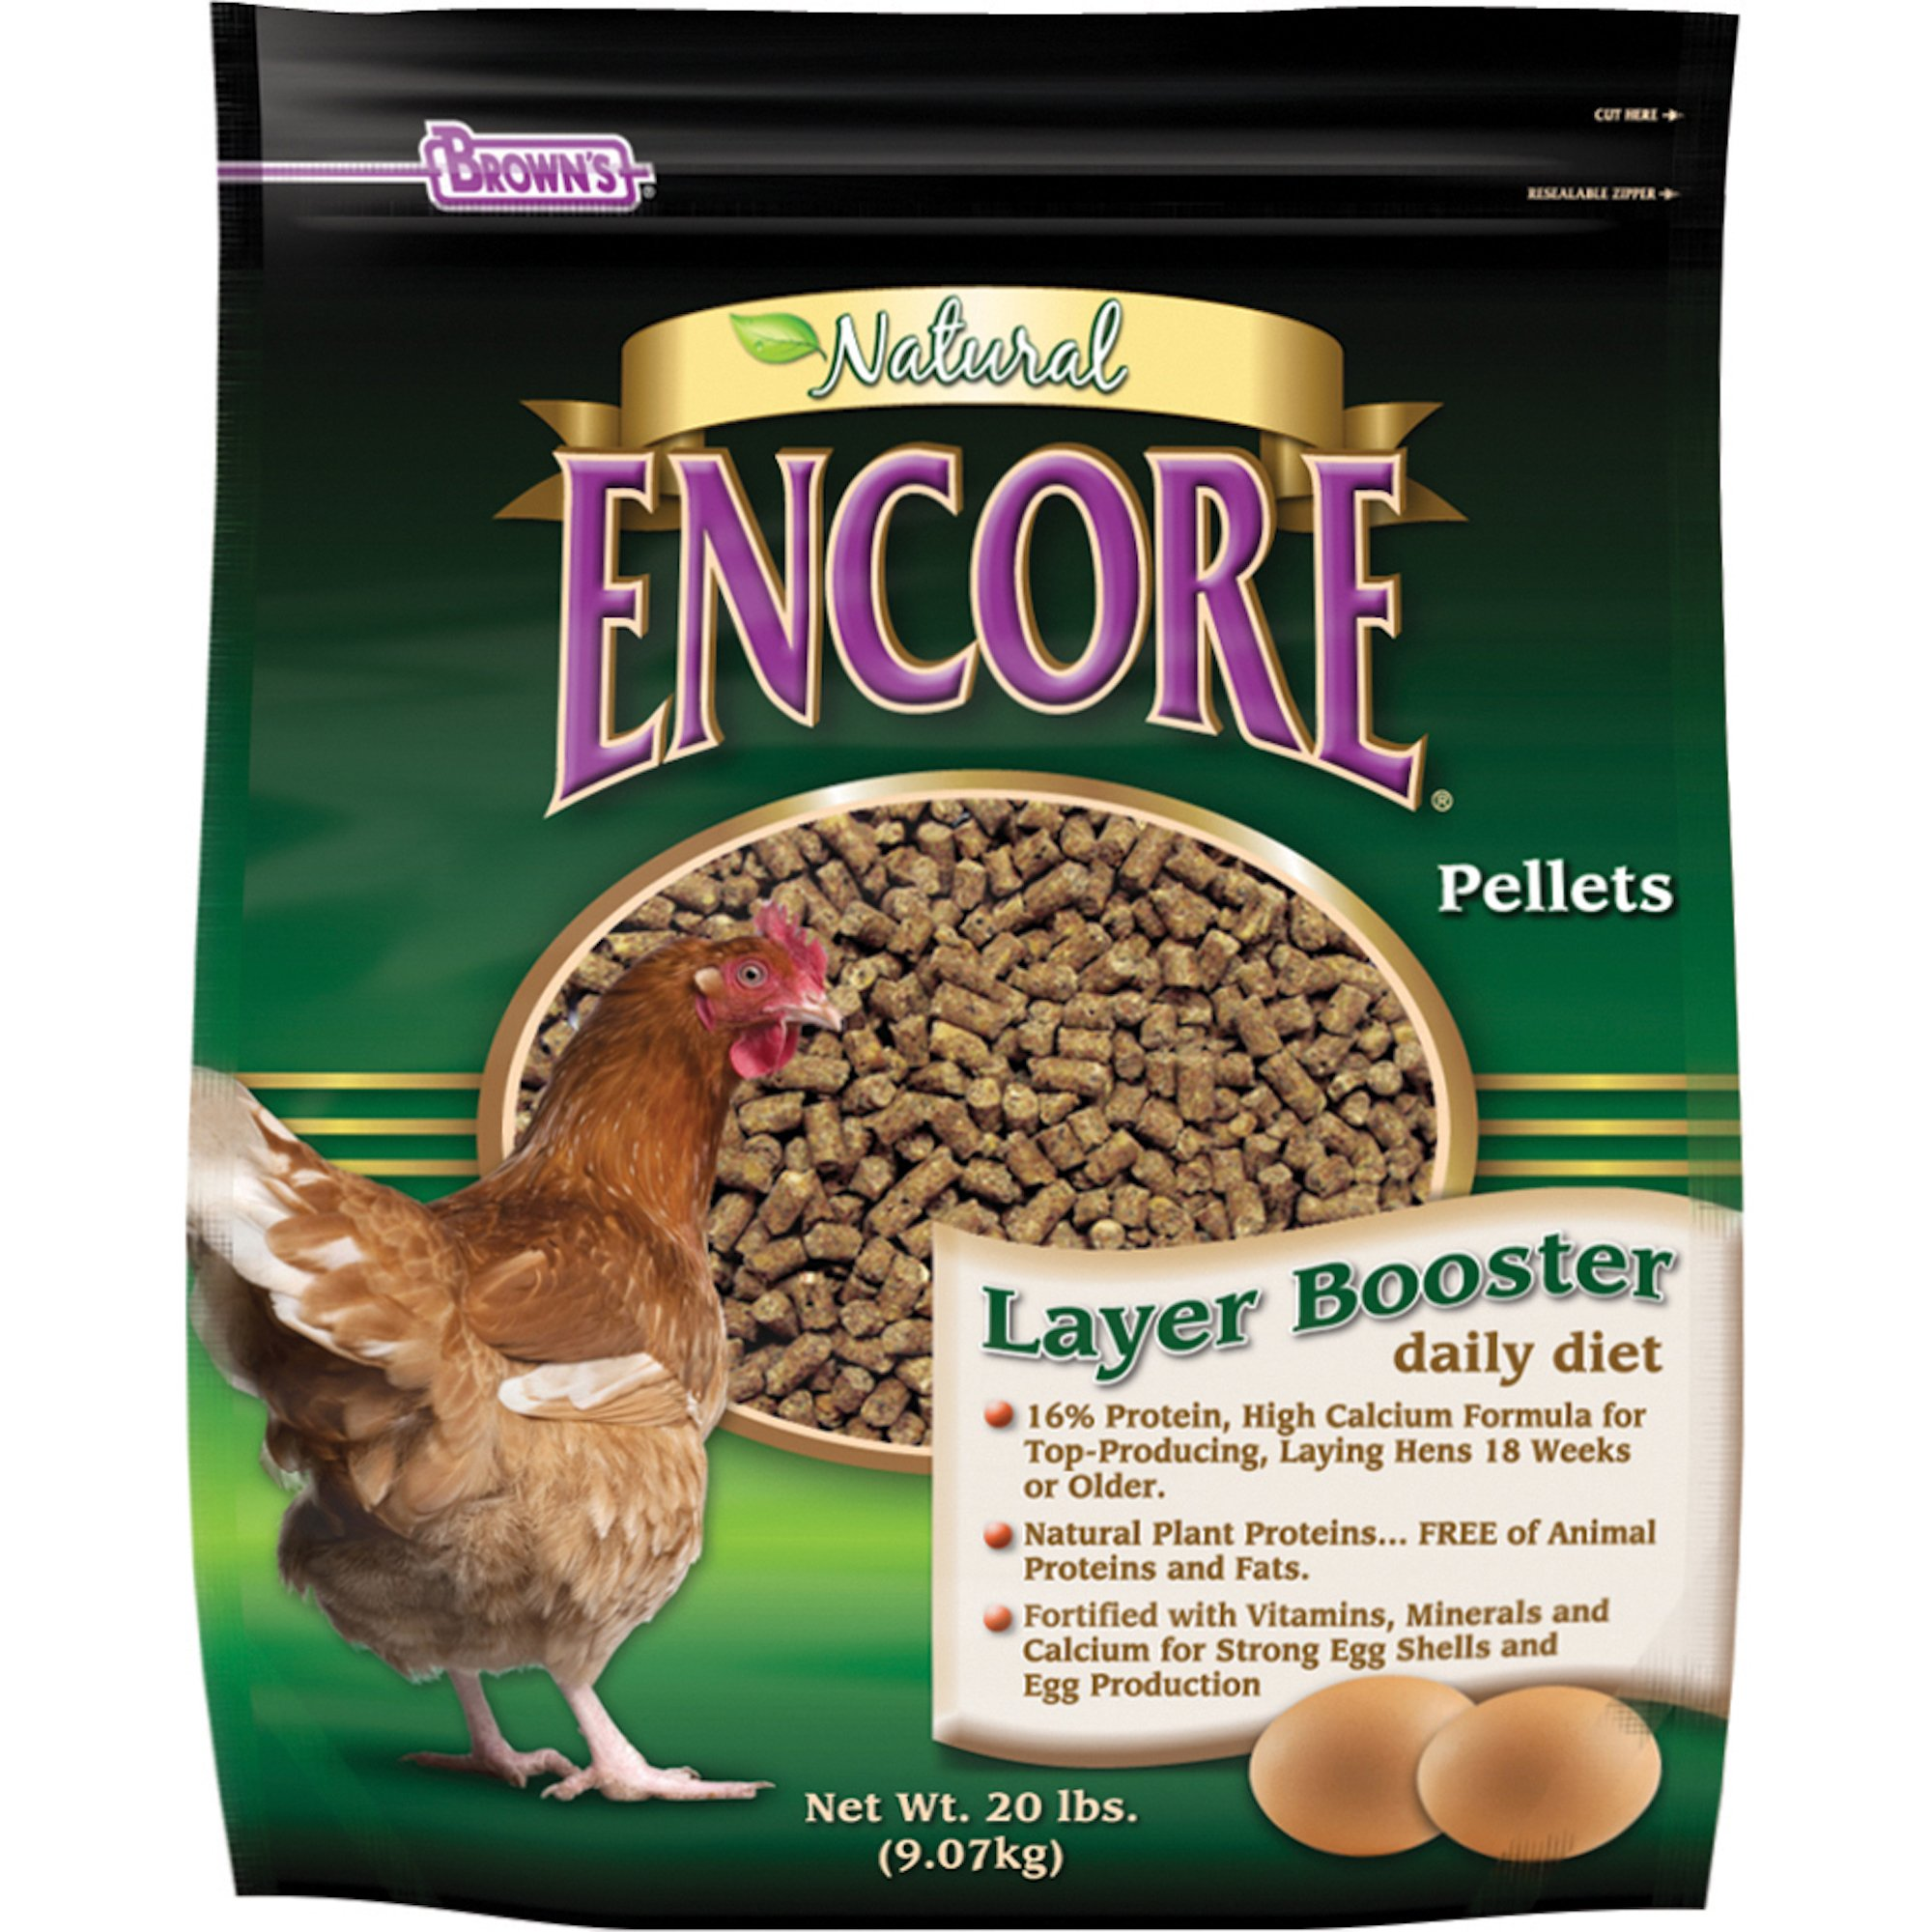 Brown's Layer Booster Daily Diet Chicken Feed